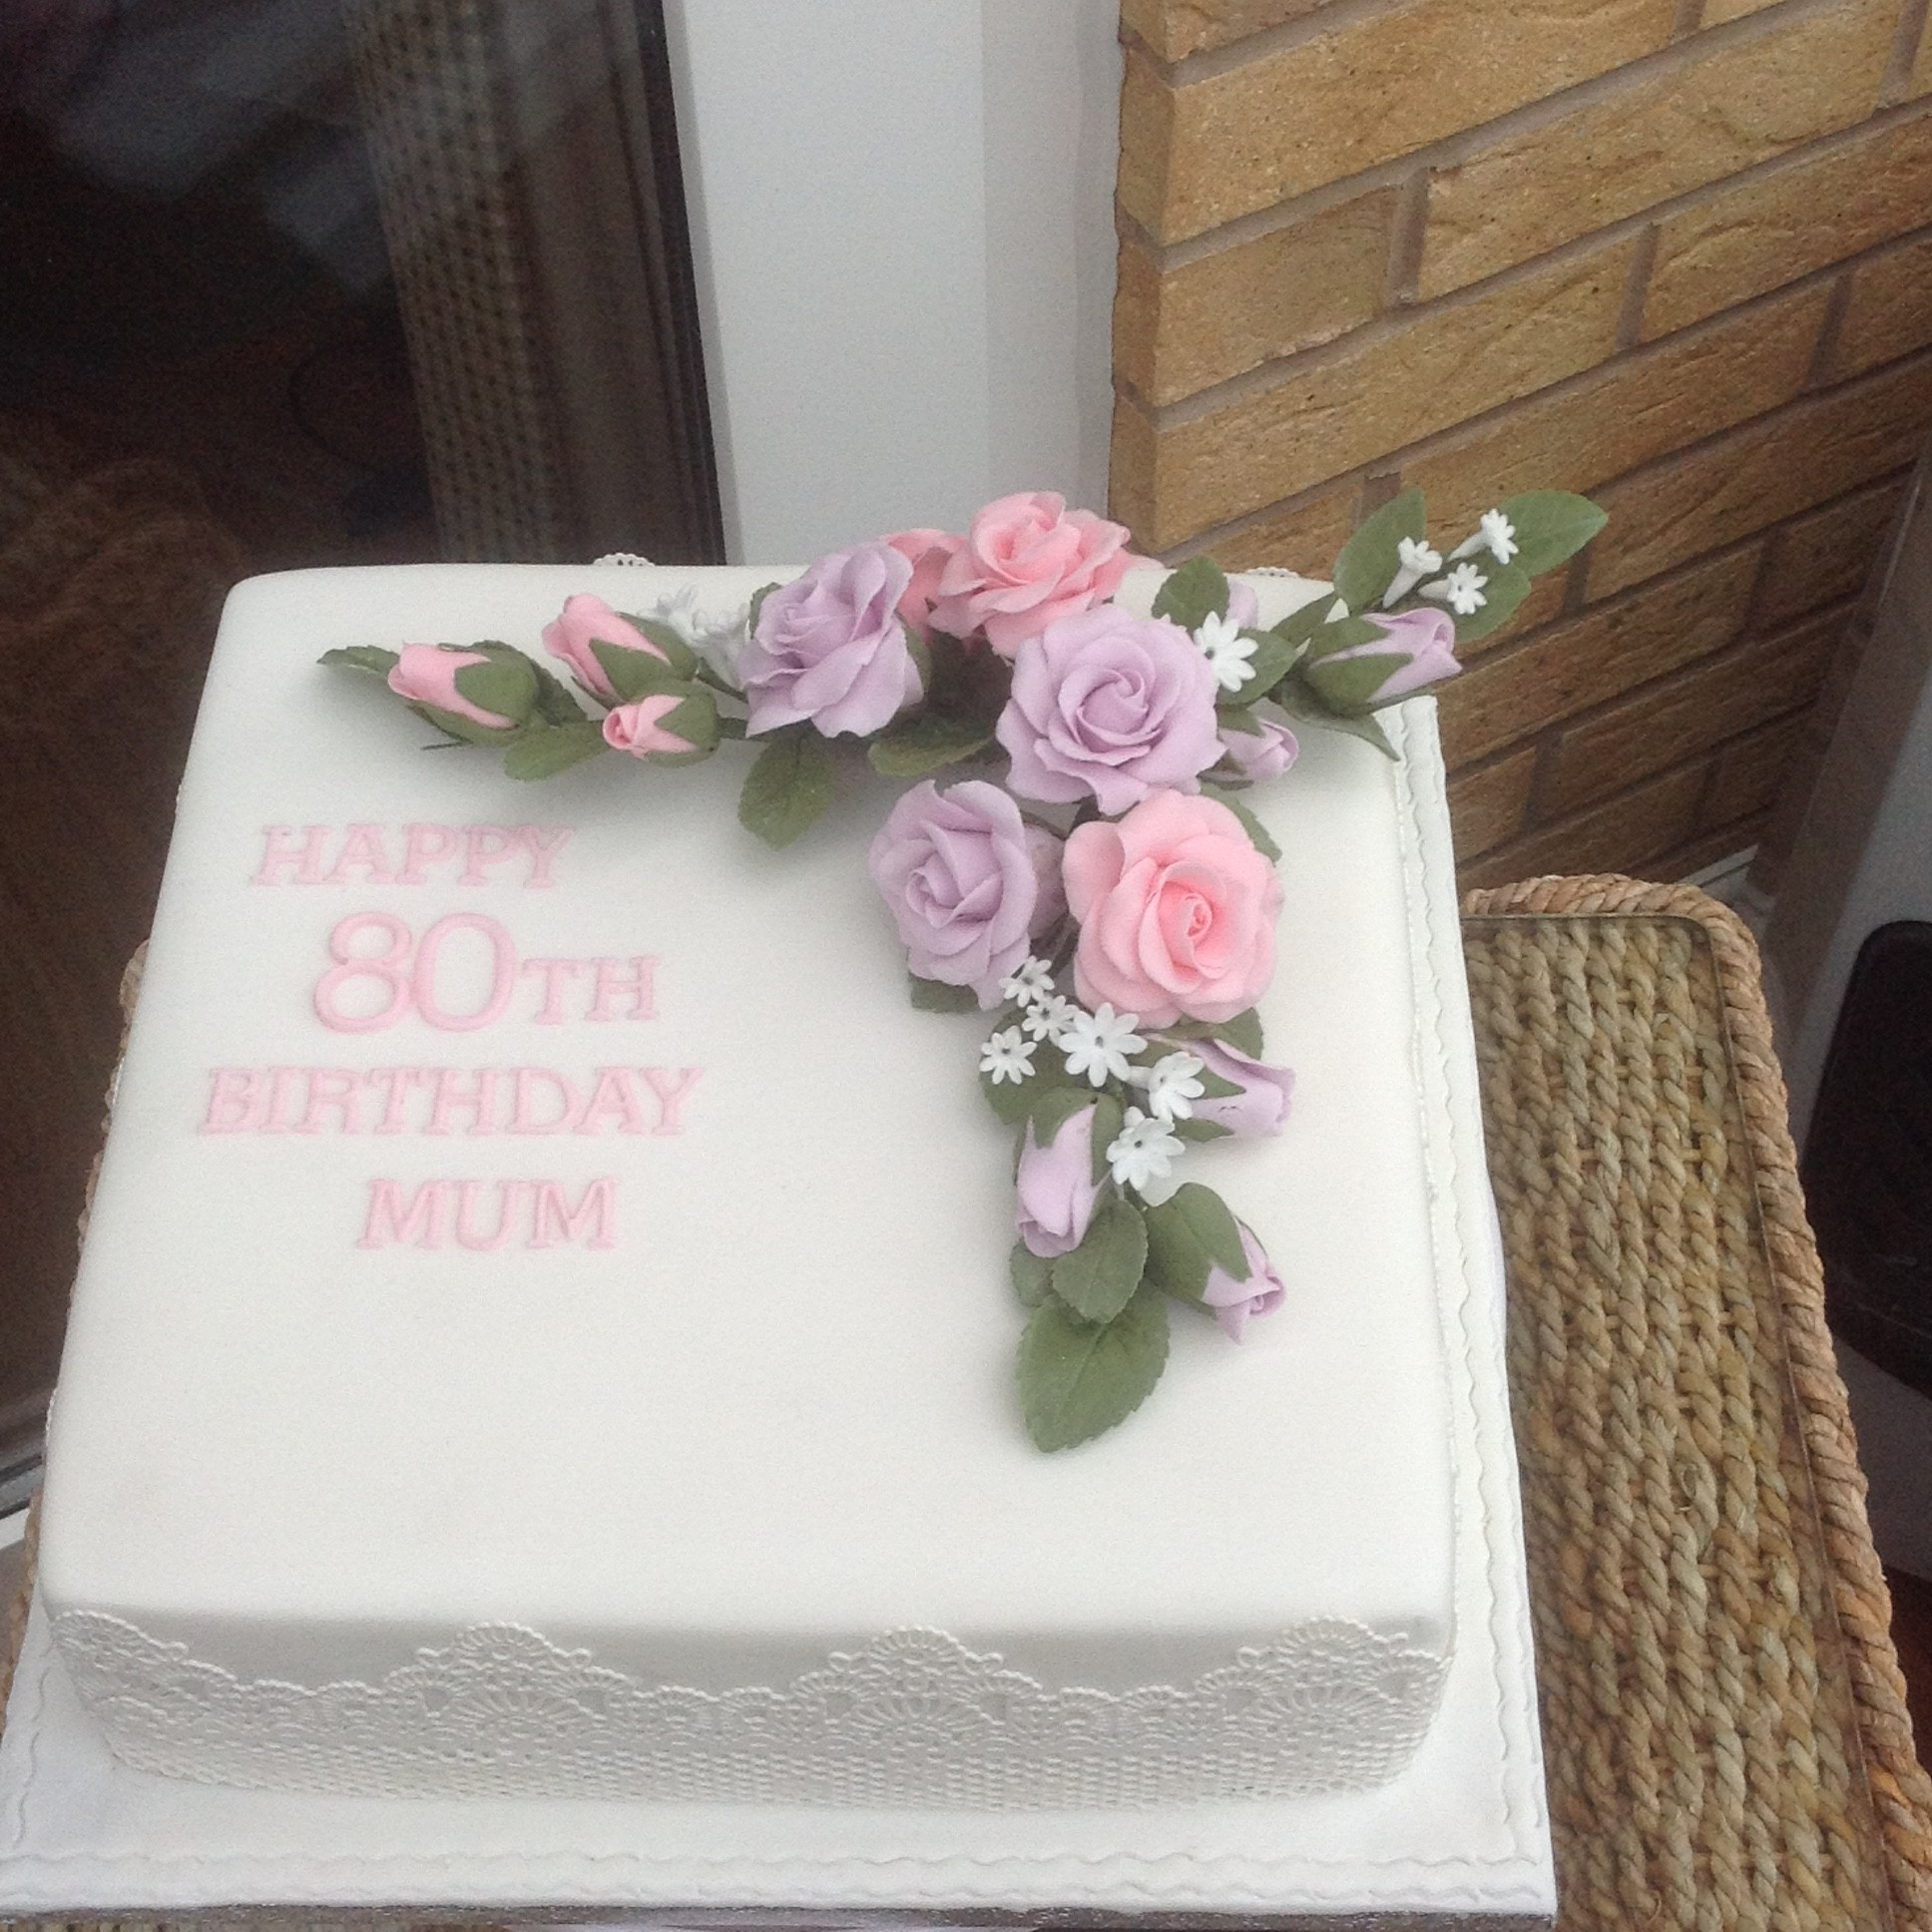 8 Inc Square 80th Birthday Cake With Hand Made Flowers